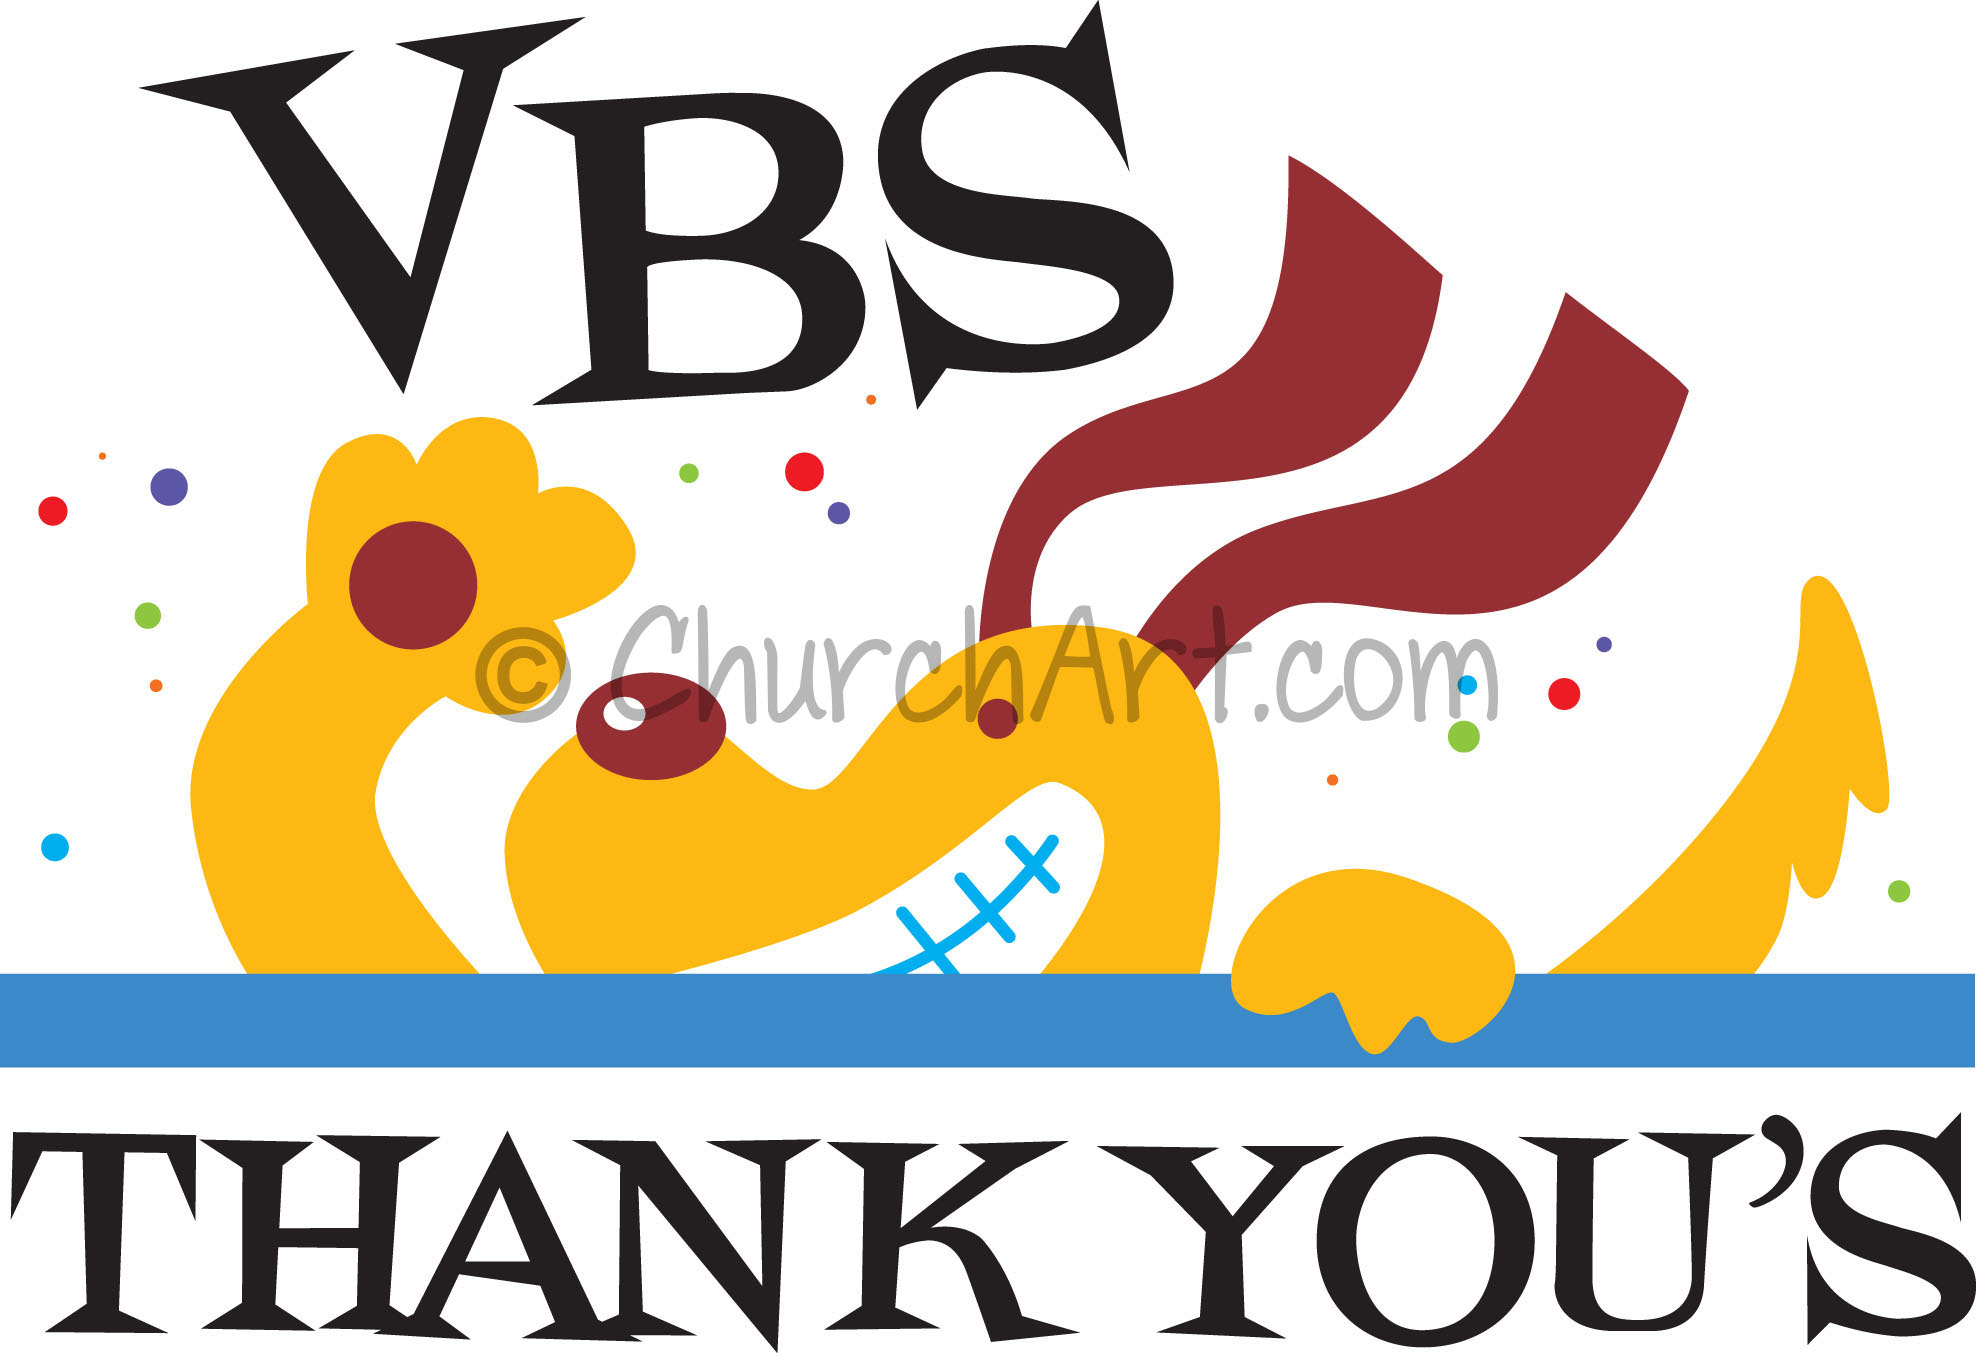 Vacation Bible School Clip-Art with dog and VBS THANK YOU'S caption